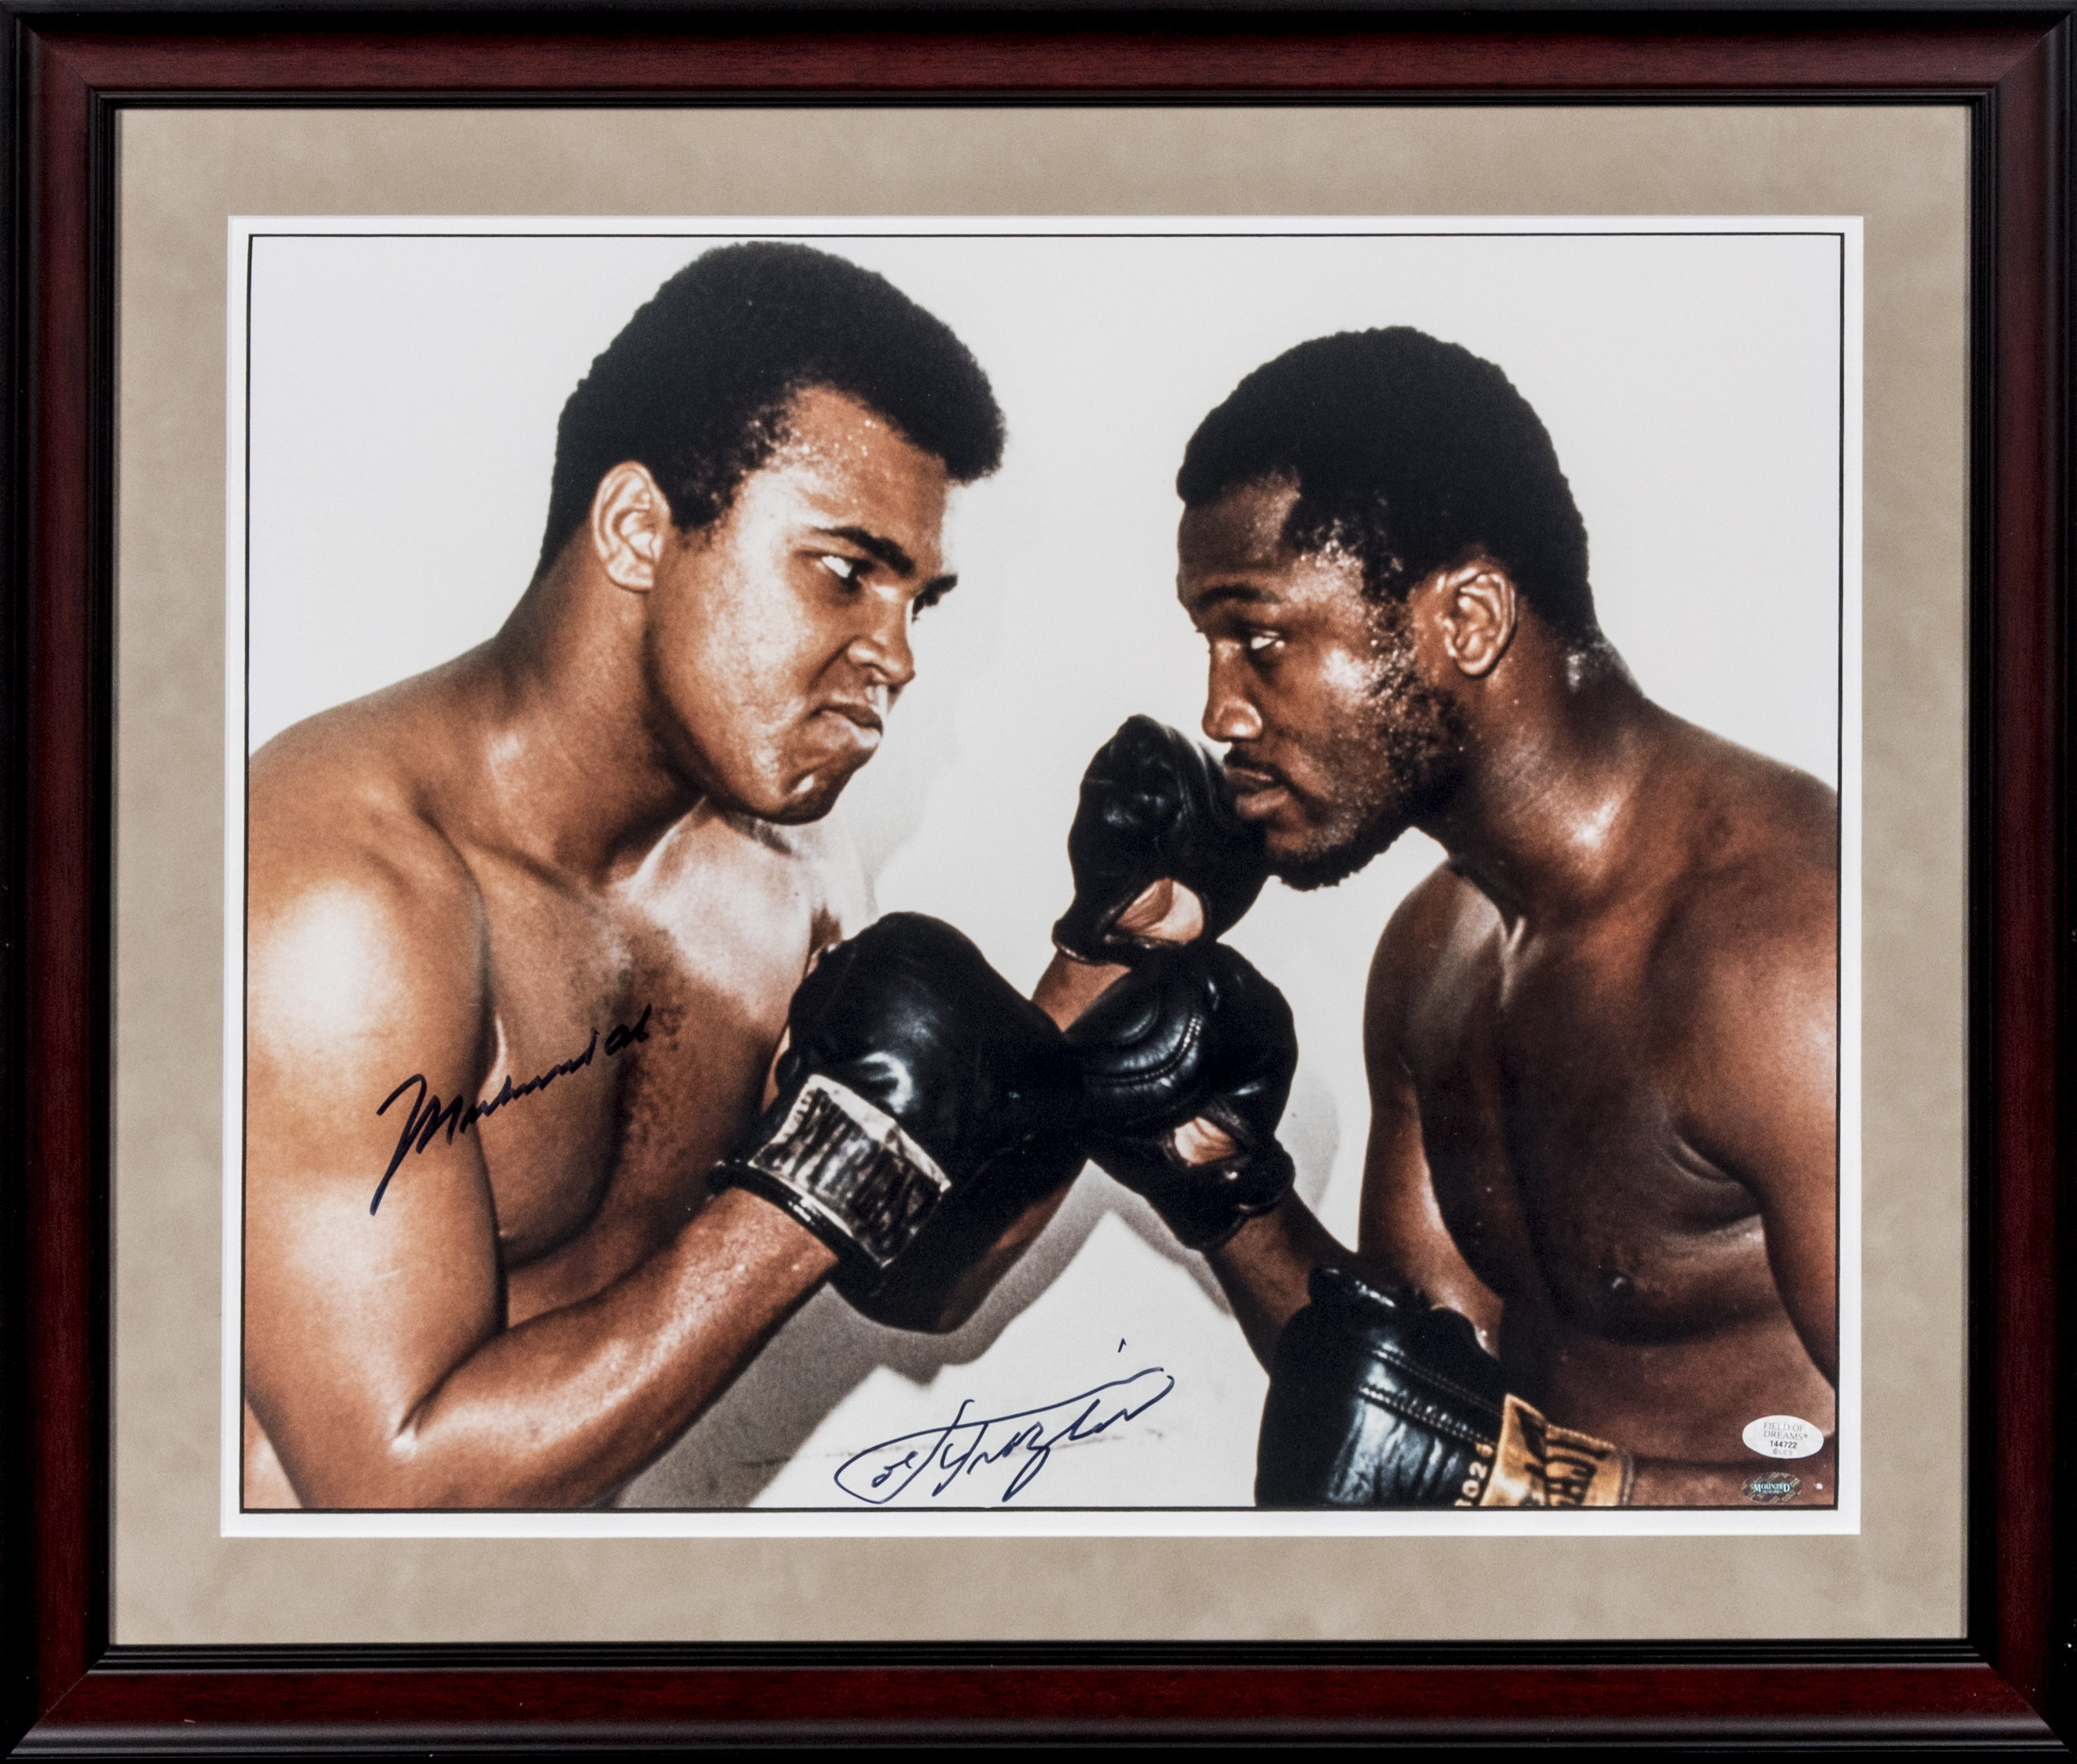 comparing and contrasting muhammad ali and joe fraizer A breakdown of how i think the fantasy matchup between mike tyson and joe frazier in their comparing tyson muhammad ali vs joe frazier 2 full.